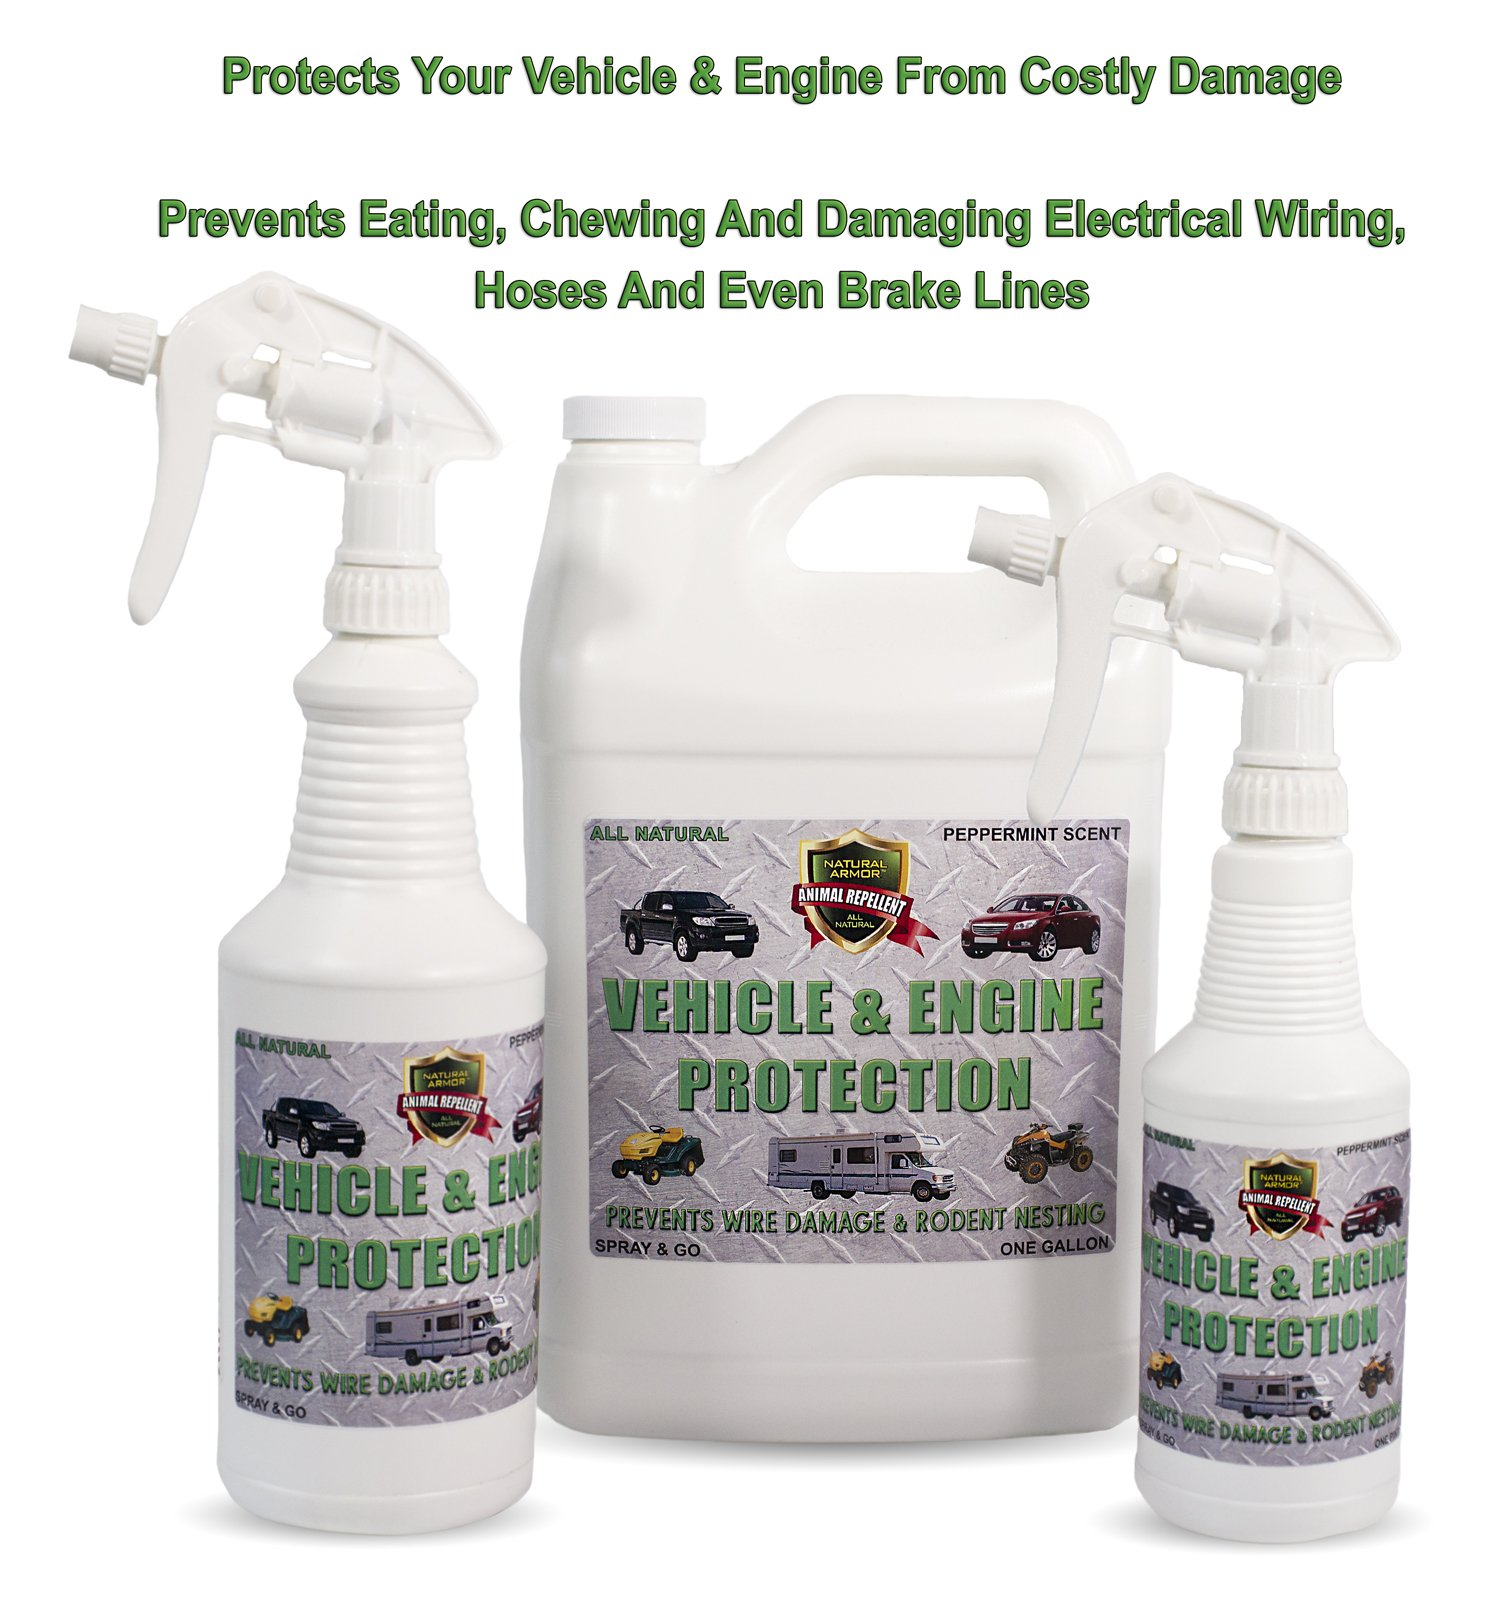 natural armor engine vehicle rodent defense repellent spray for mice mouse squirrels rats. Black Bedroom Furniture Sets. Home Design Ideas